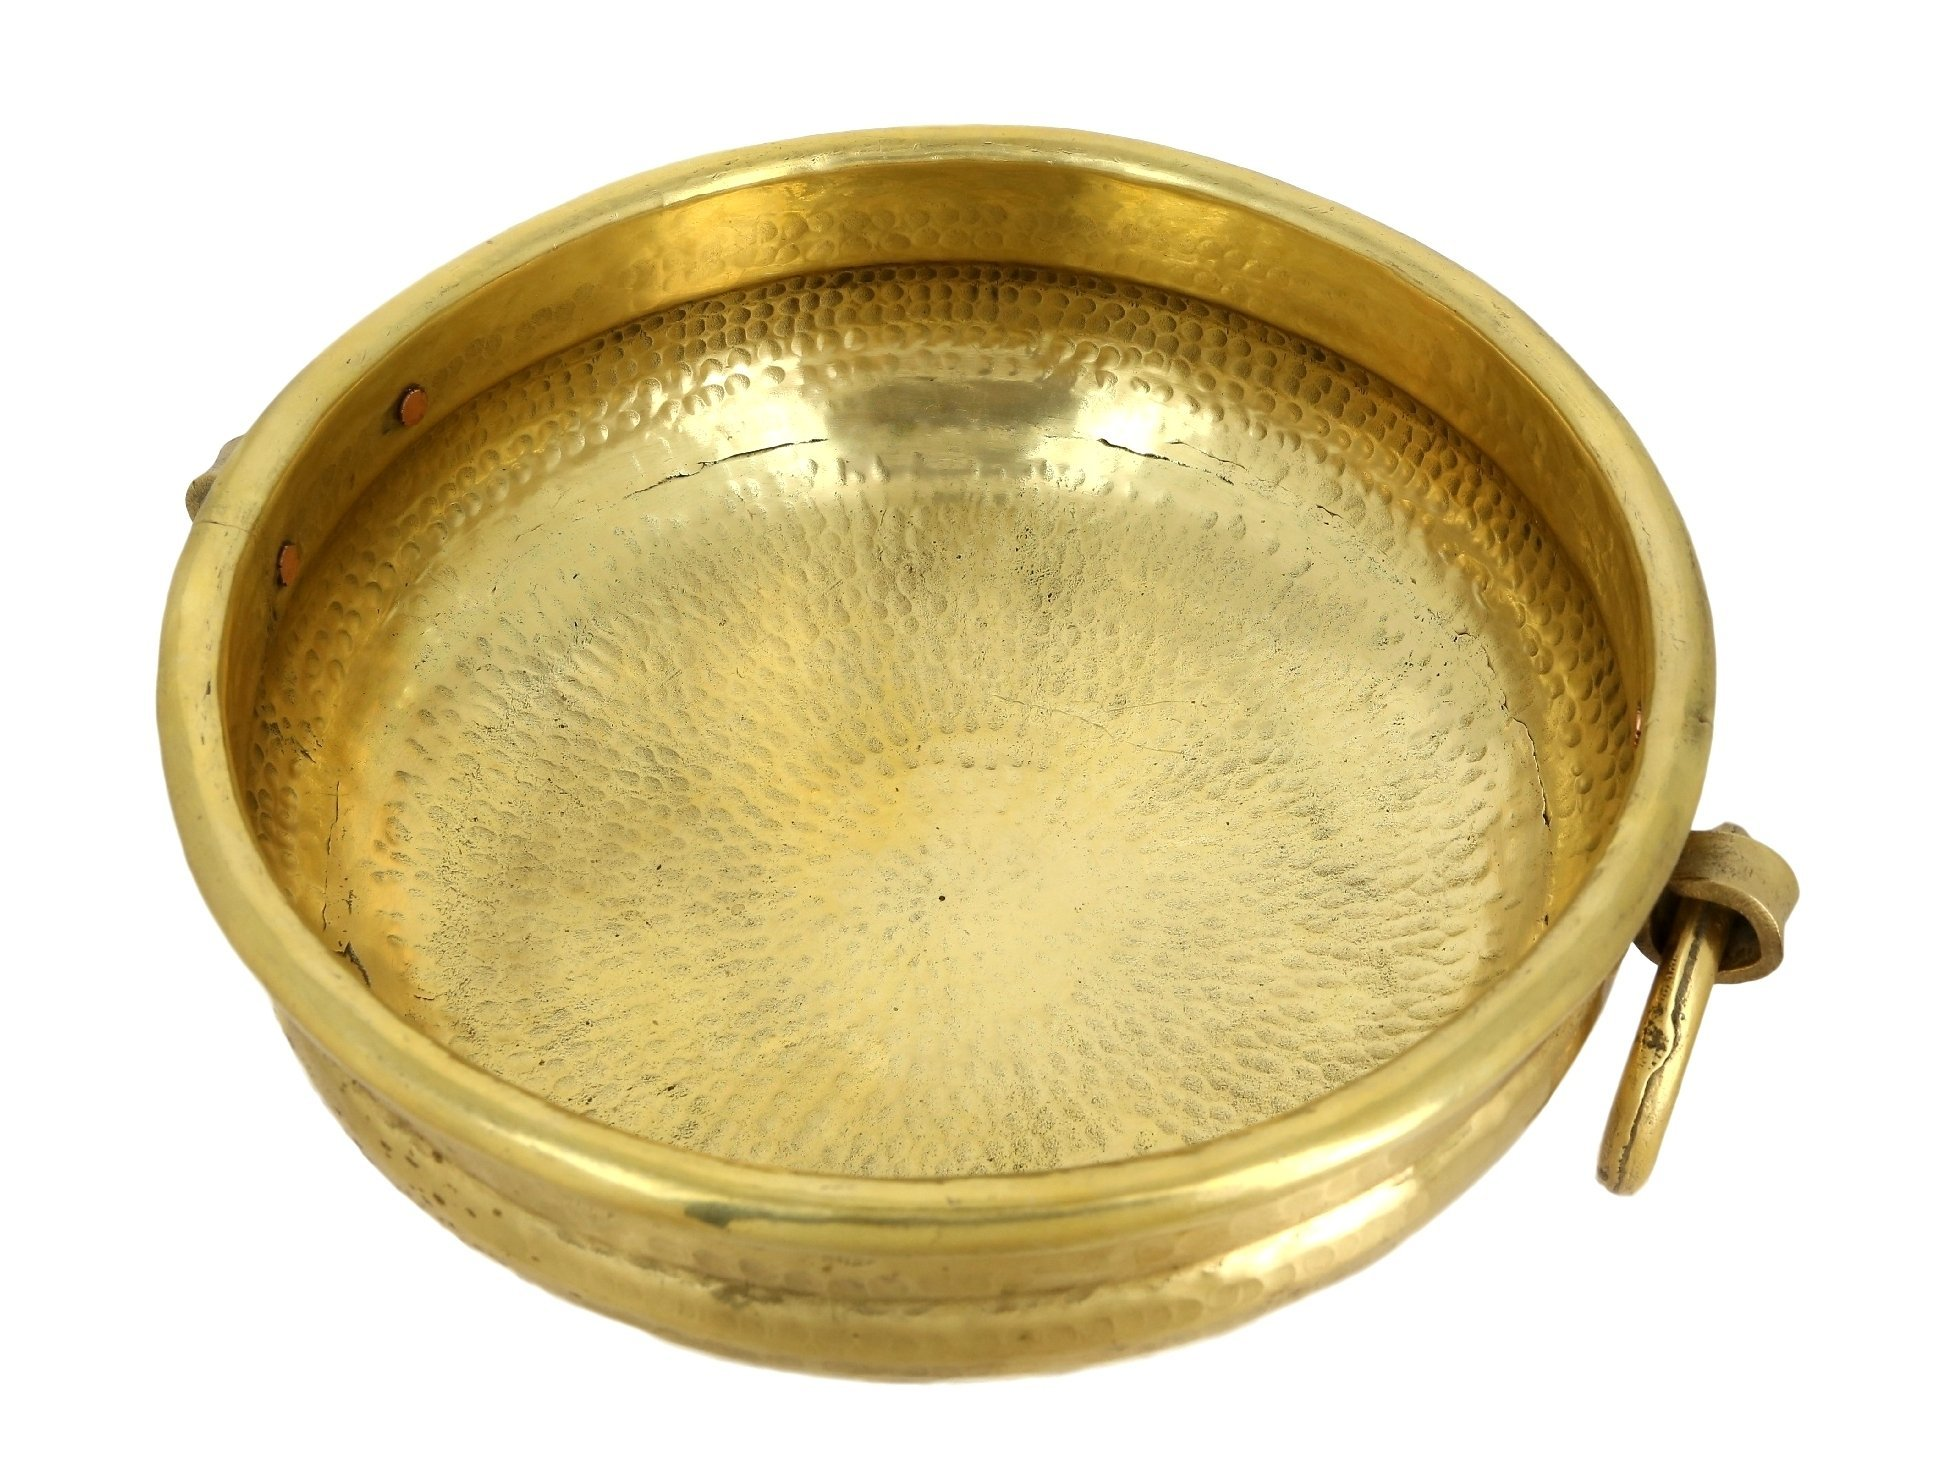 Handmade Brass Urli - 6 by 14 Inch Uruli Bowl - Suitable for Decorating, Offerings & Even Serving Food - Artisan Crafted in India